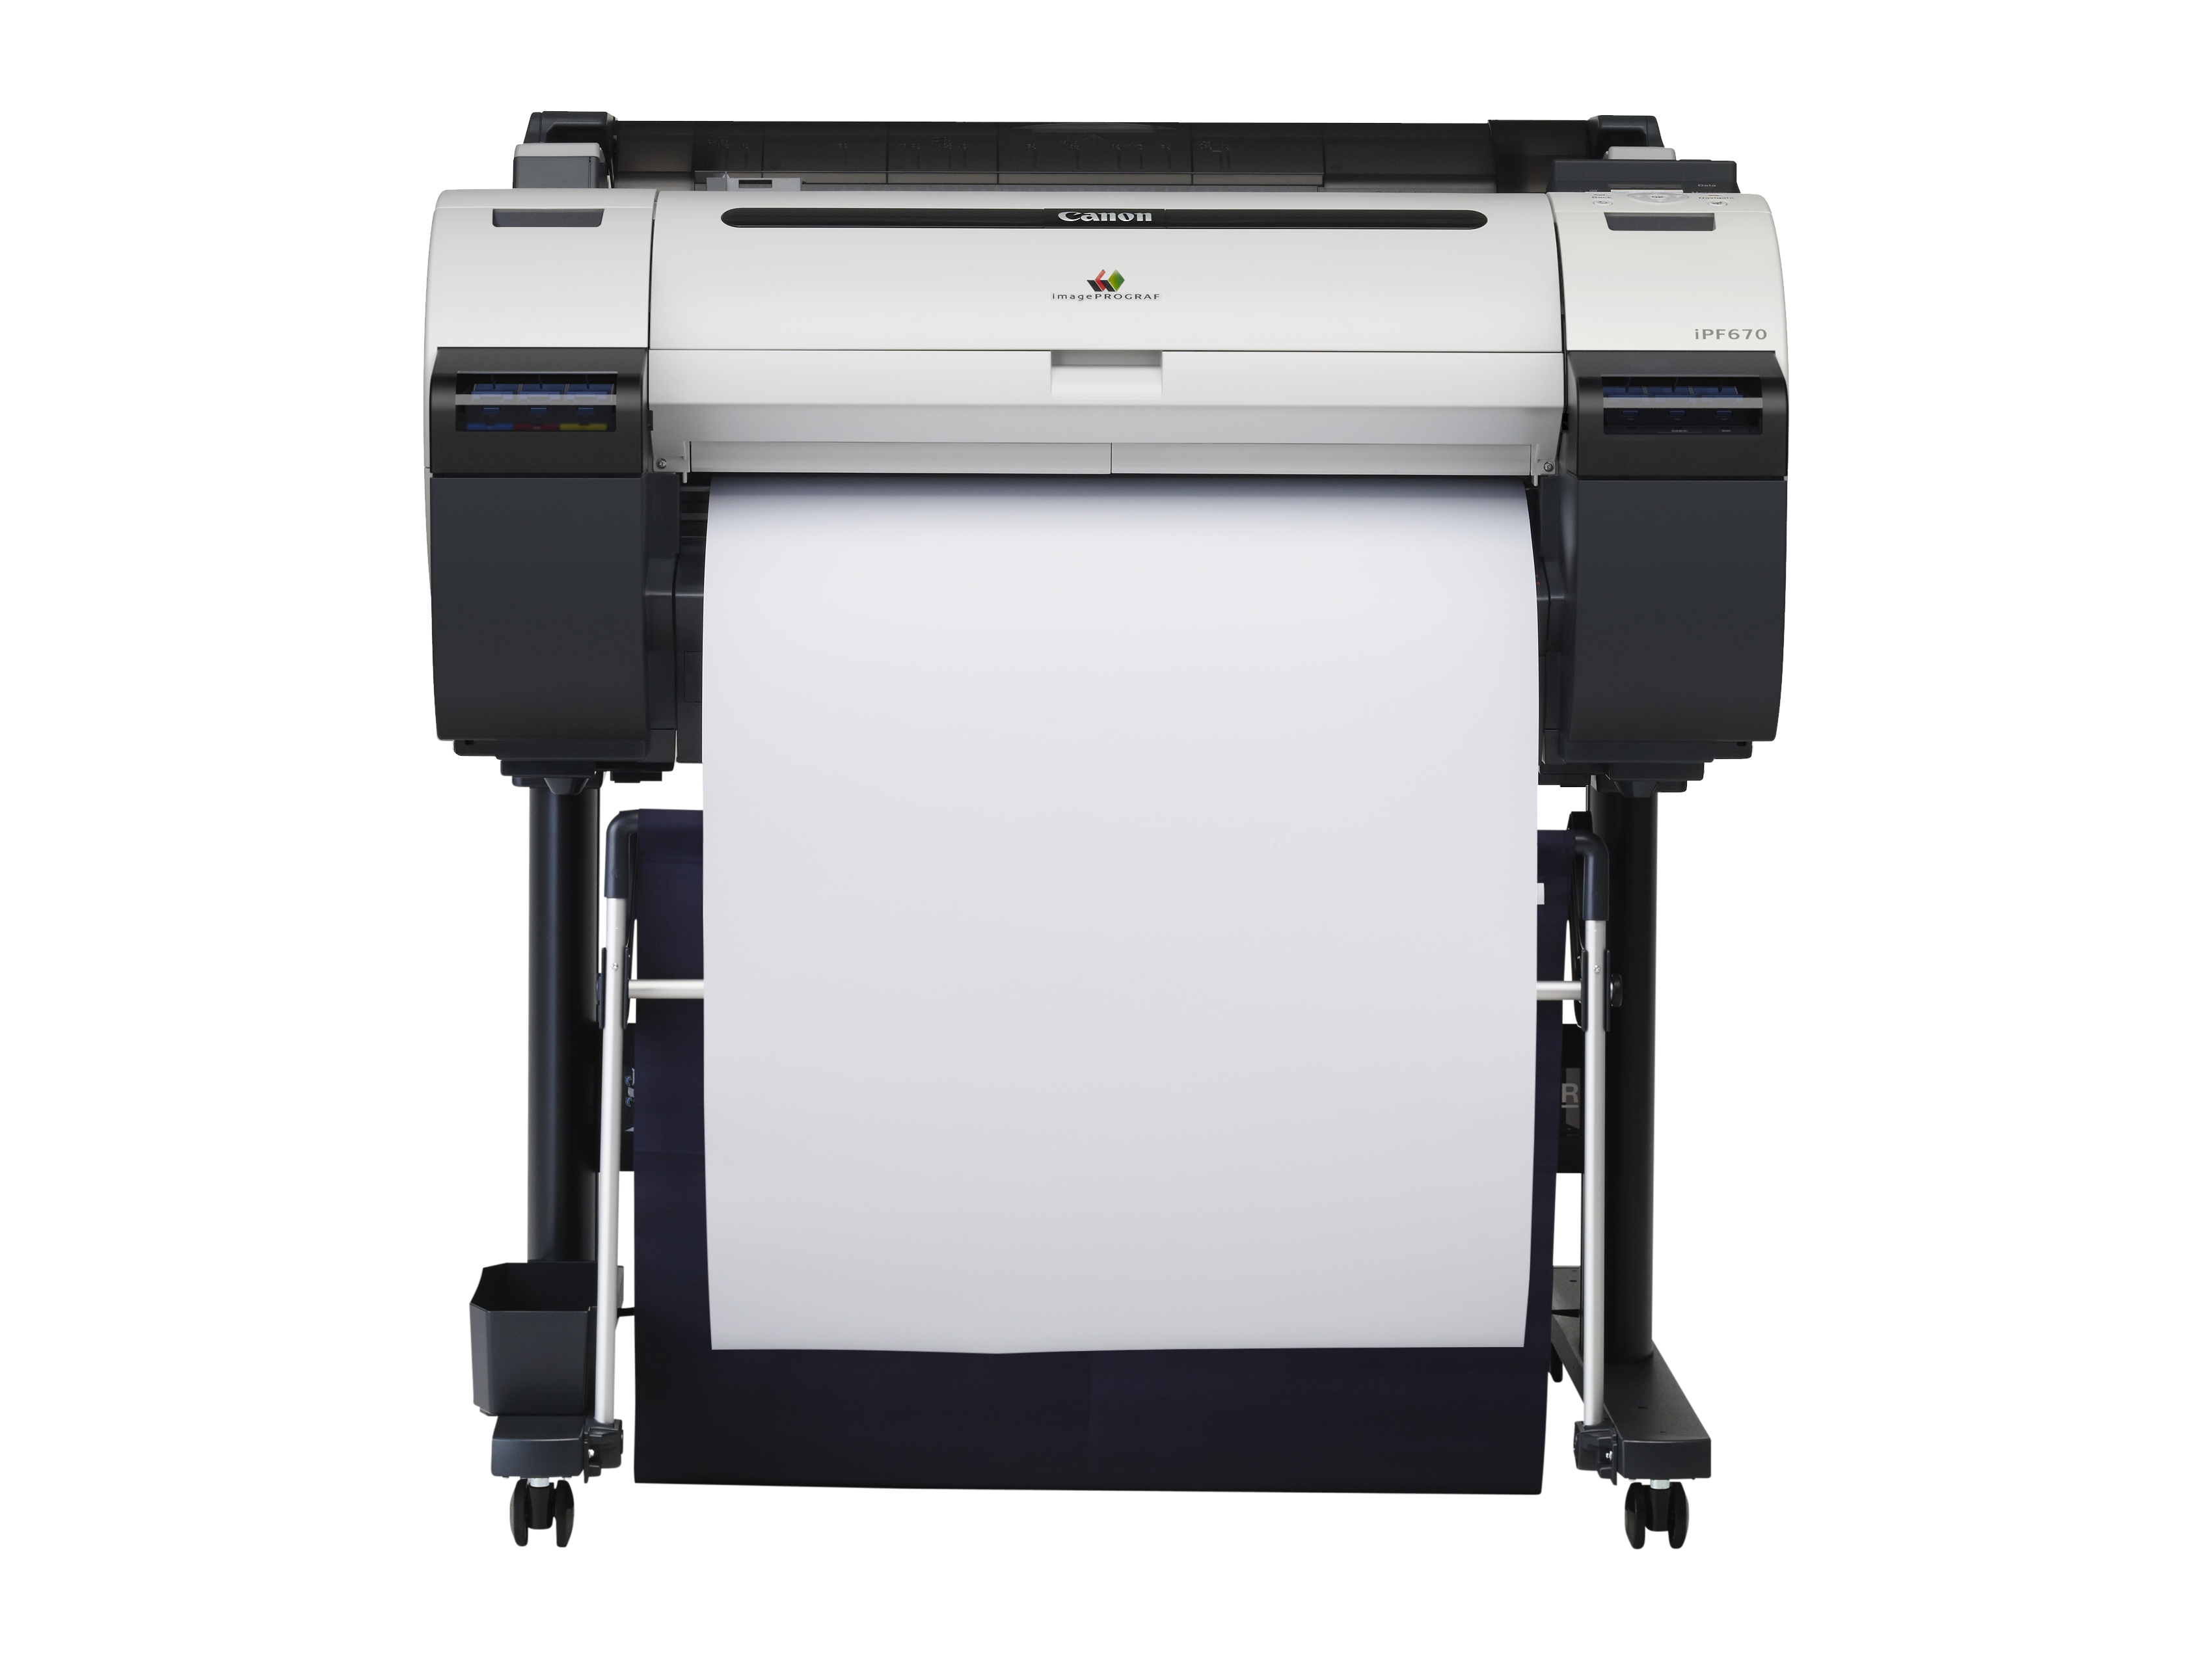 Large Format Inkjet Cad Technical Plotters Plotter Hp Designjet T520 24 Inch Canon Ipf670